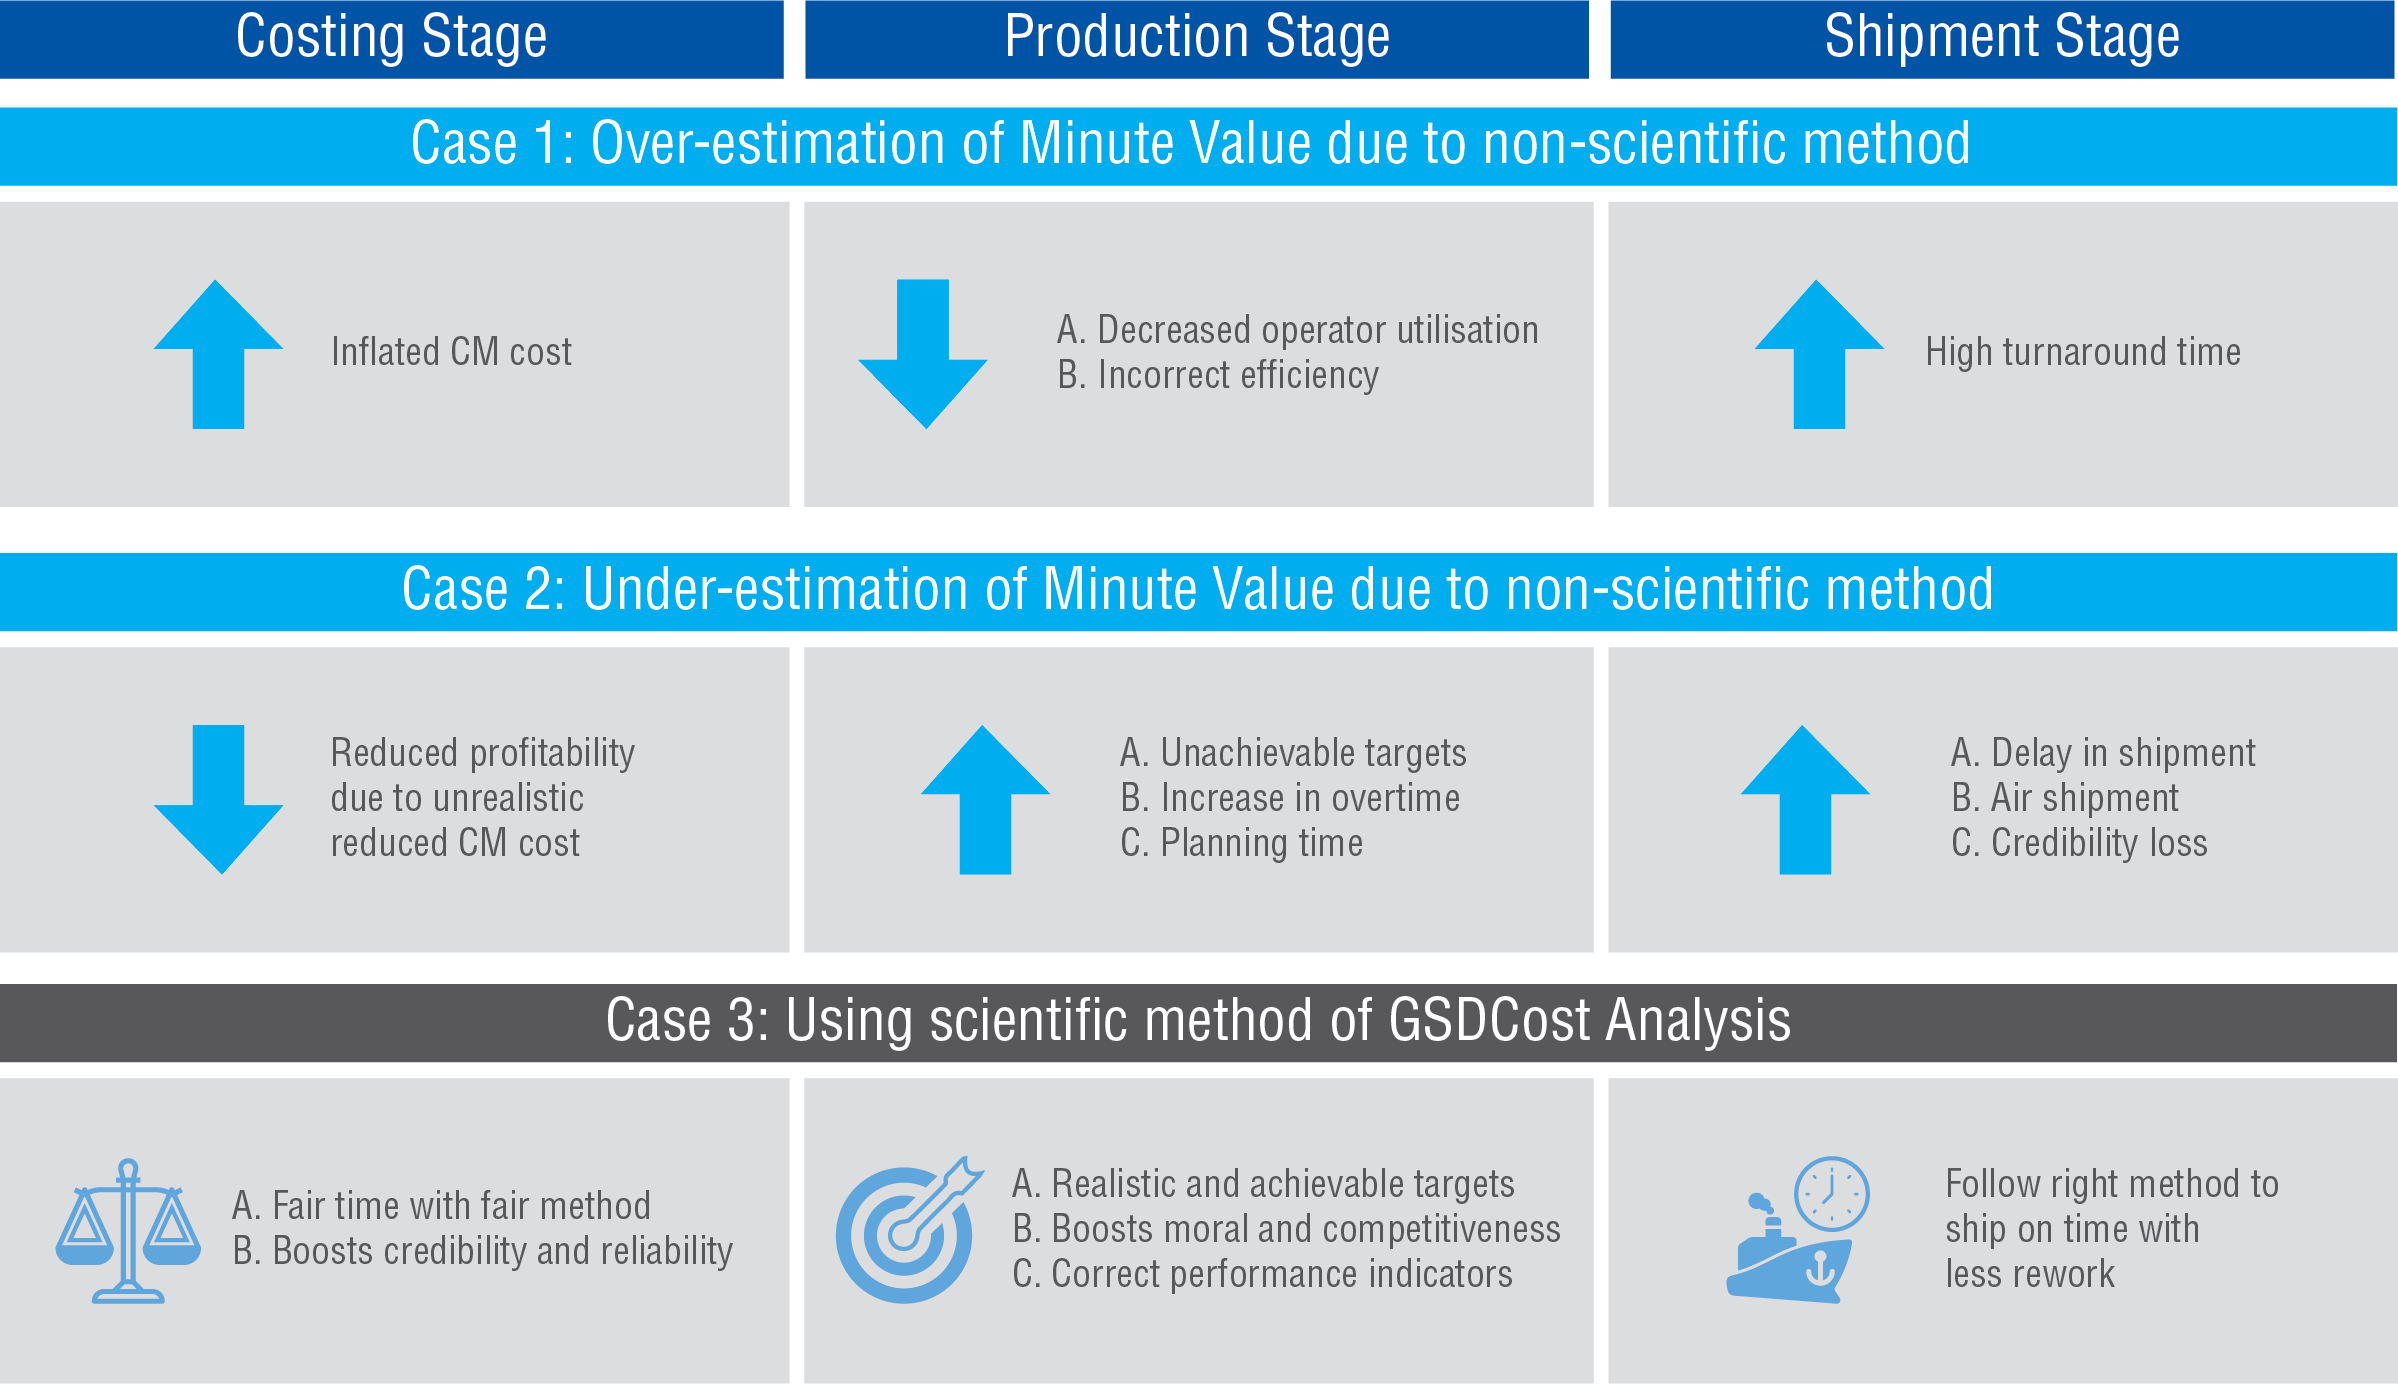 Using scientific method of GSDCost analysis to achieve manufacturing excellence